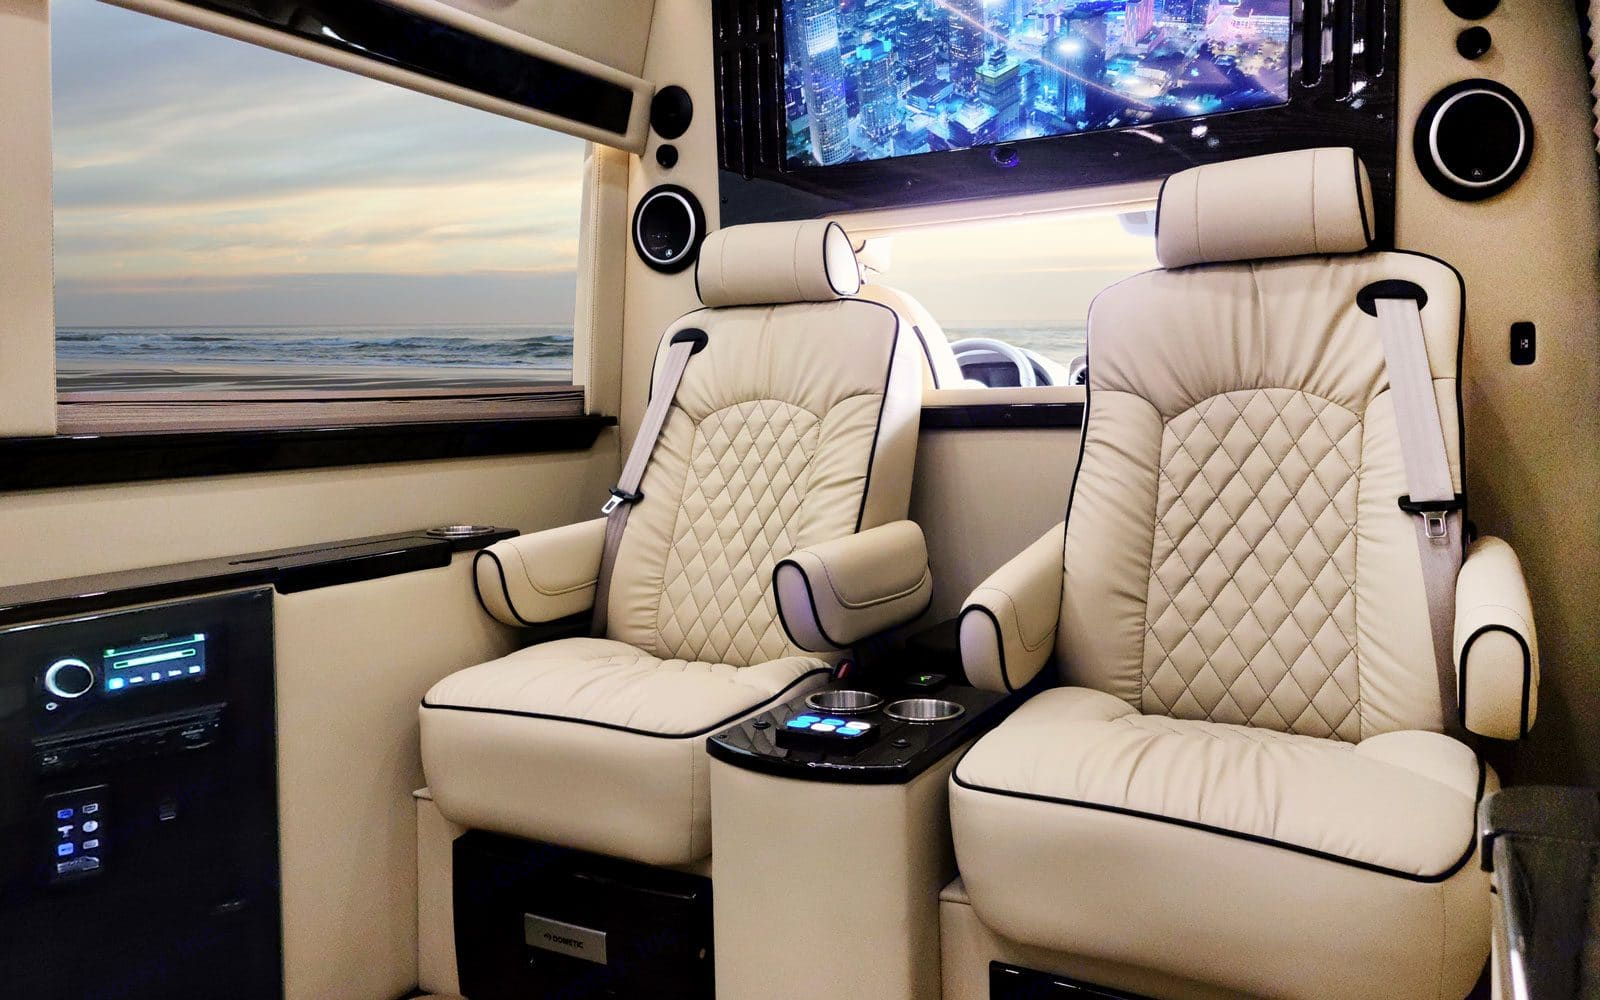 Privacy partition window that rolls up for privacy. Mercedes-Benz Sprinter 2021